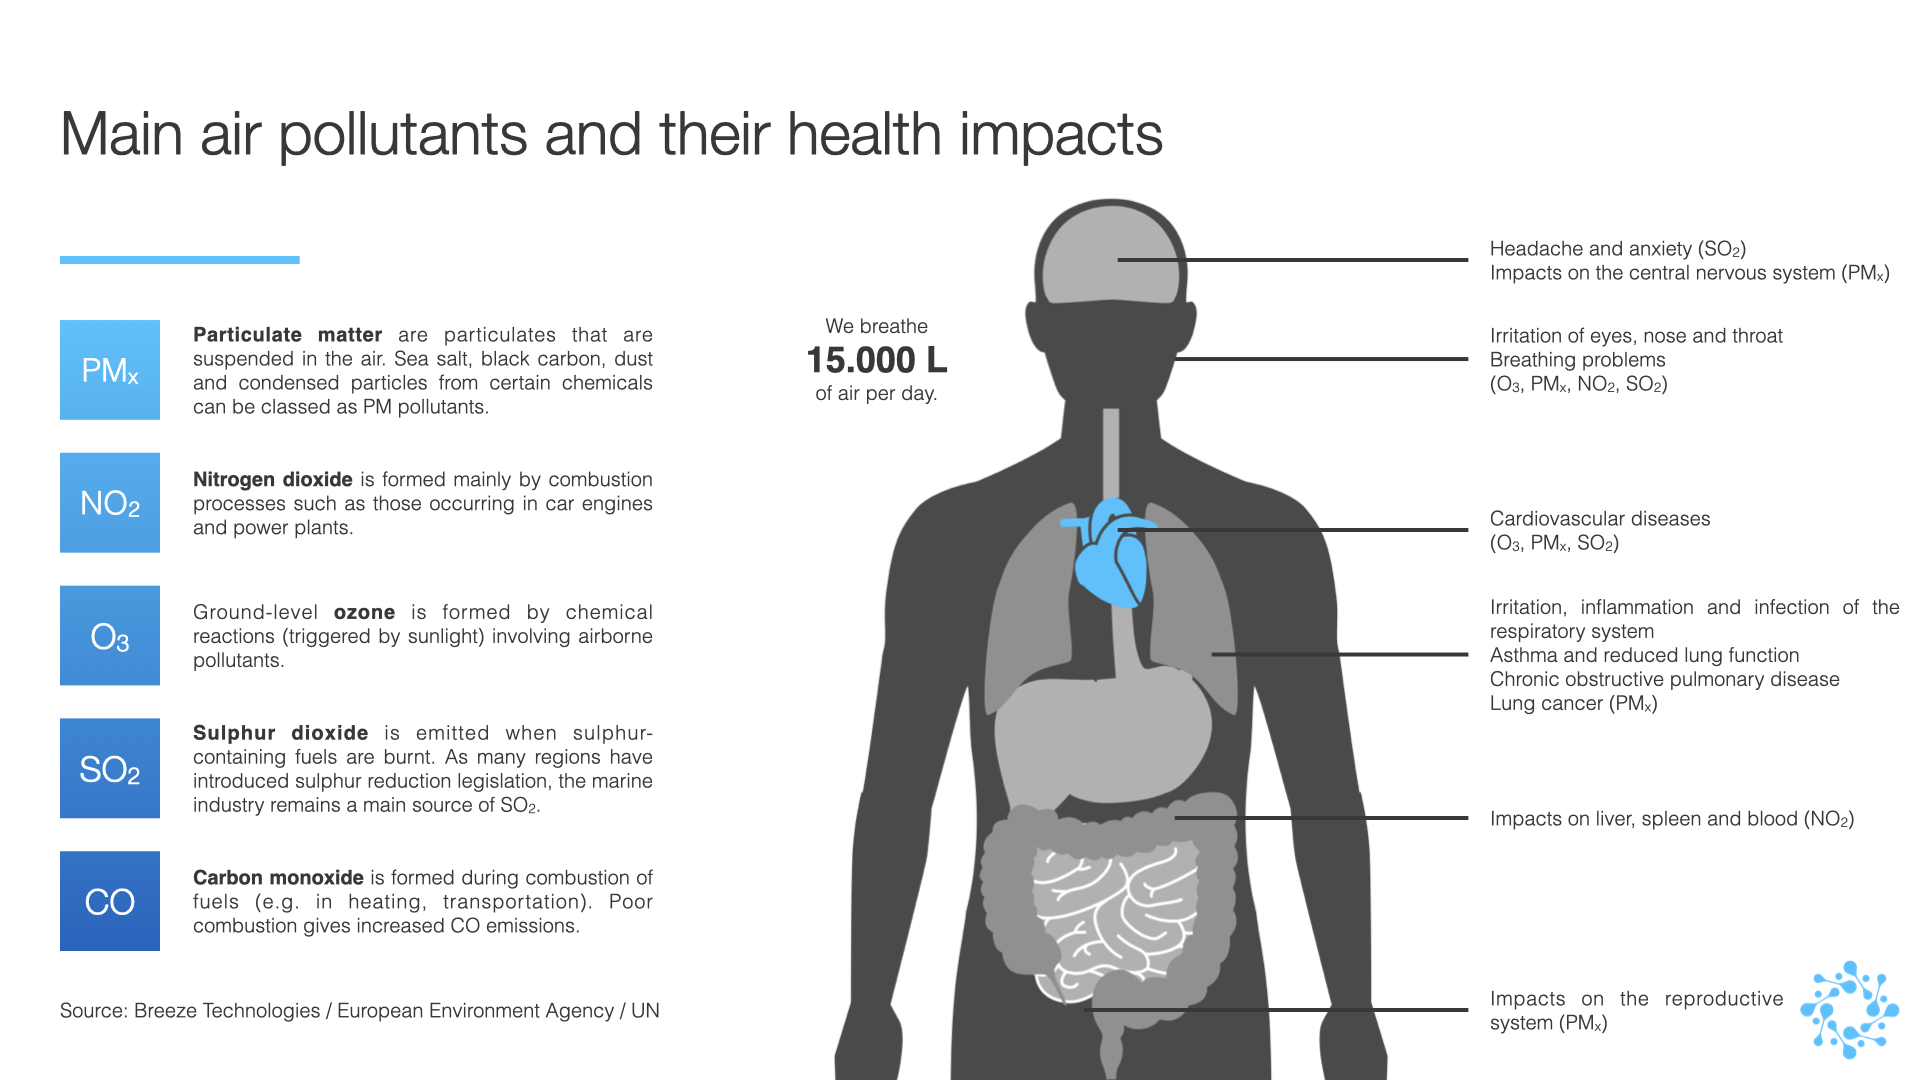 Infographic: Main air pollutants and their health impacts